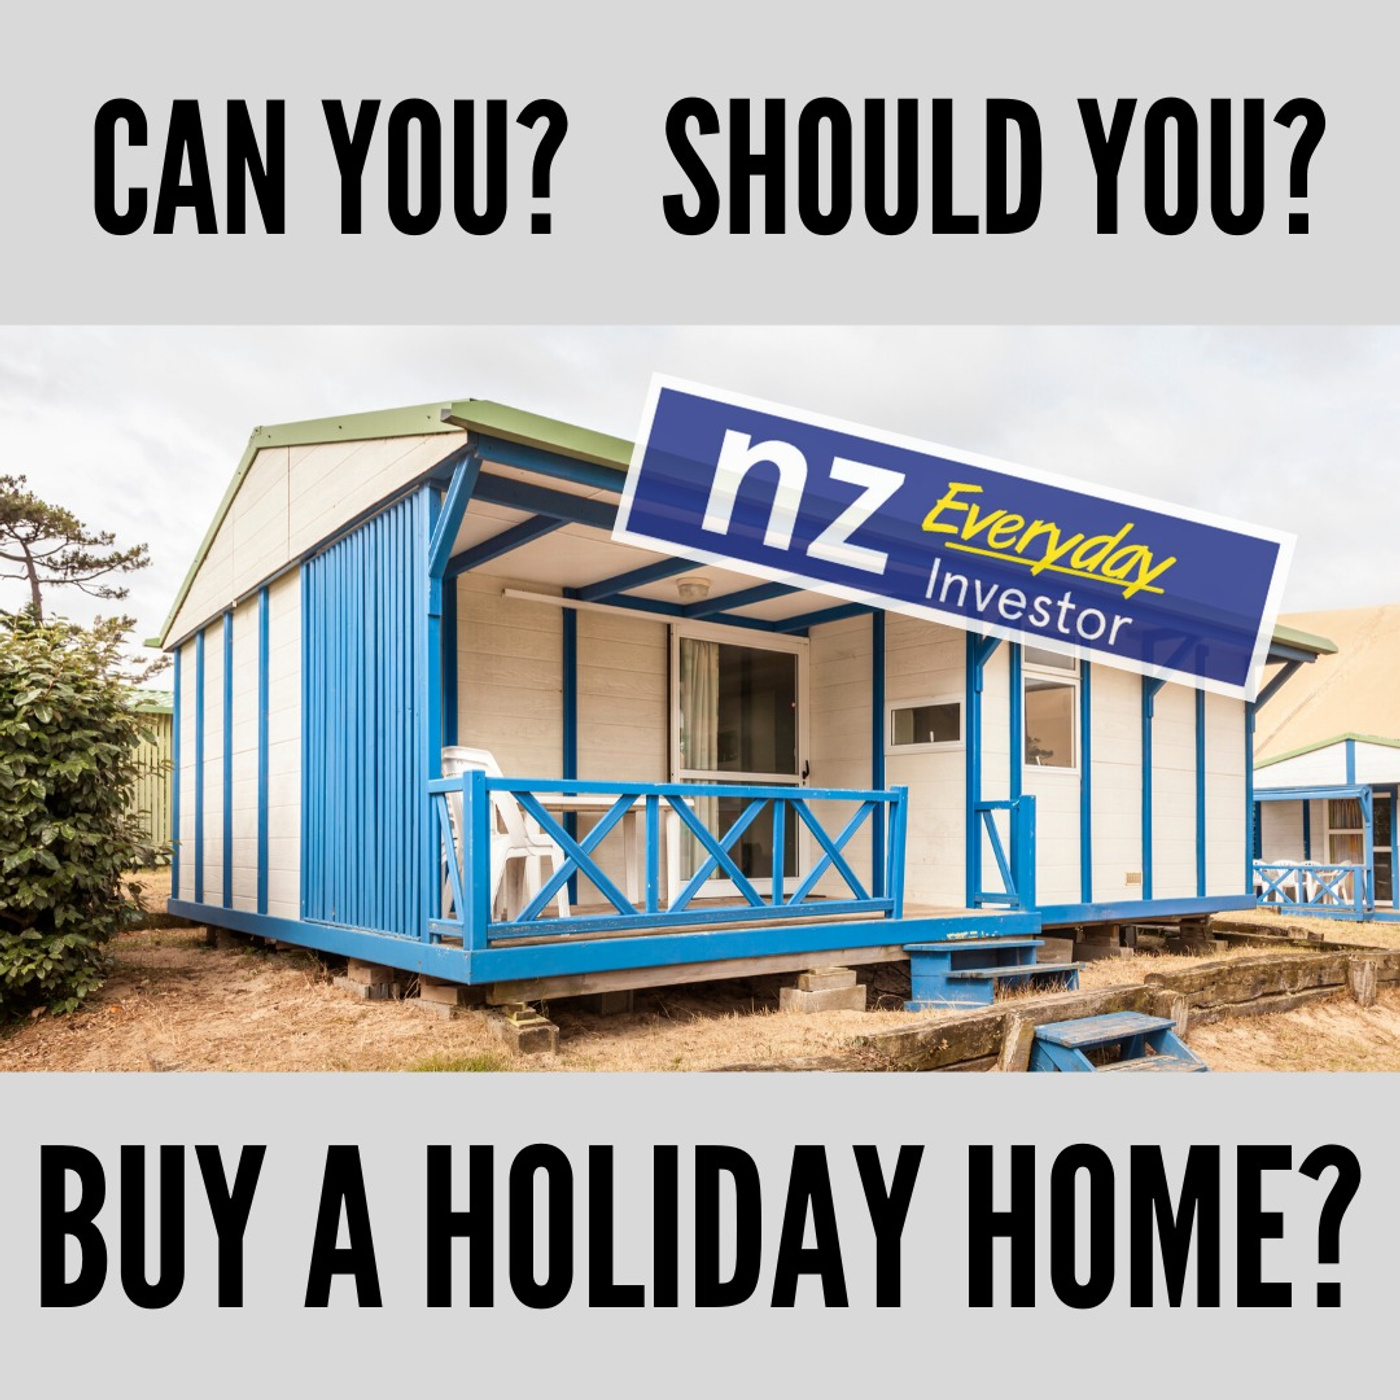 Can you, should you, buy a holiday home?